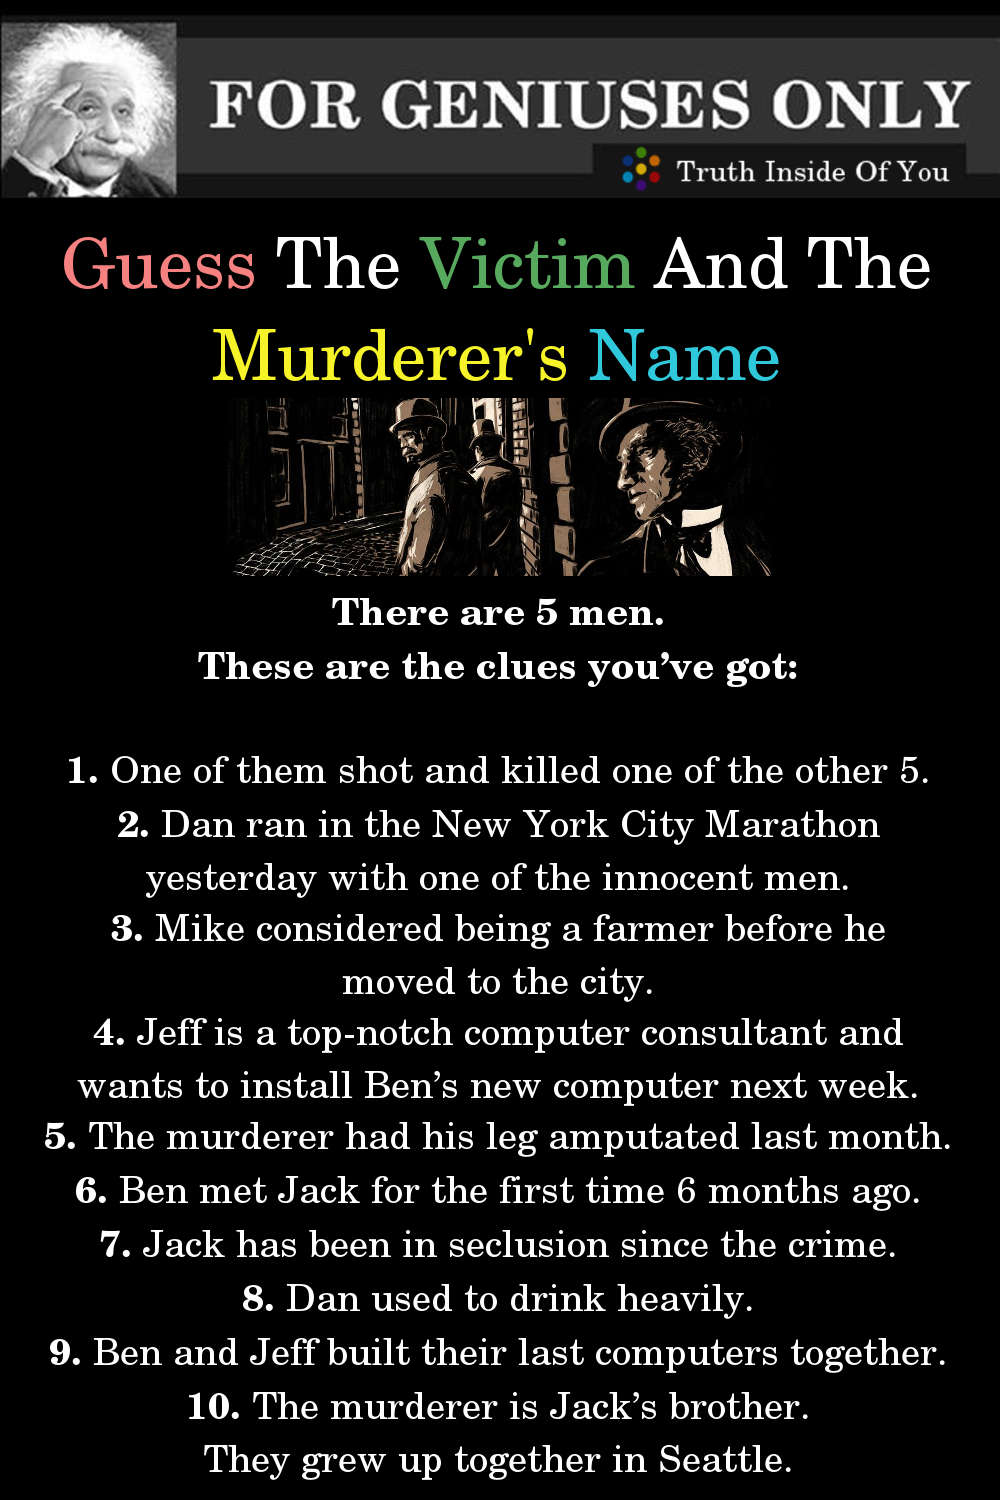 Riddle: Guess The Victim And The Murderer's Name